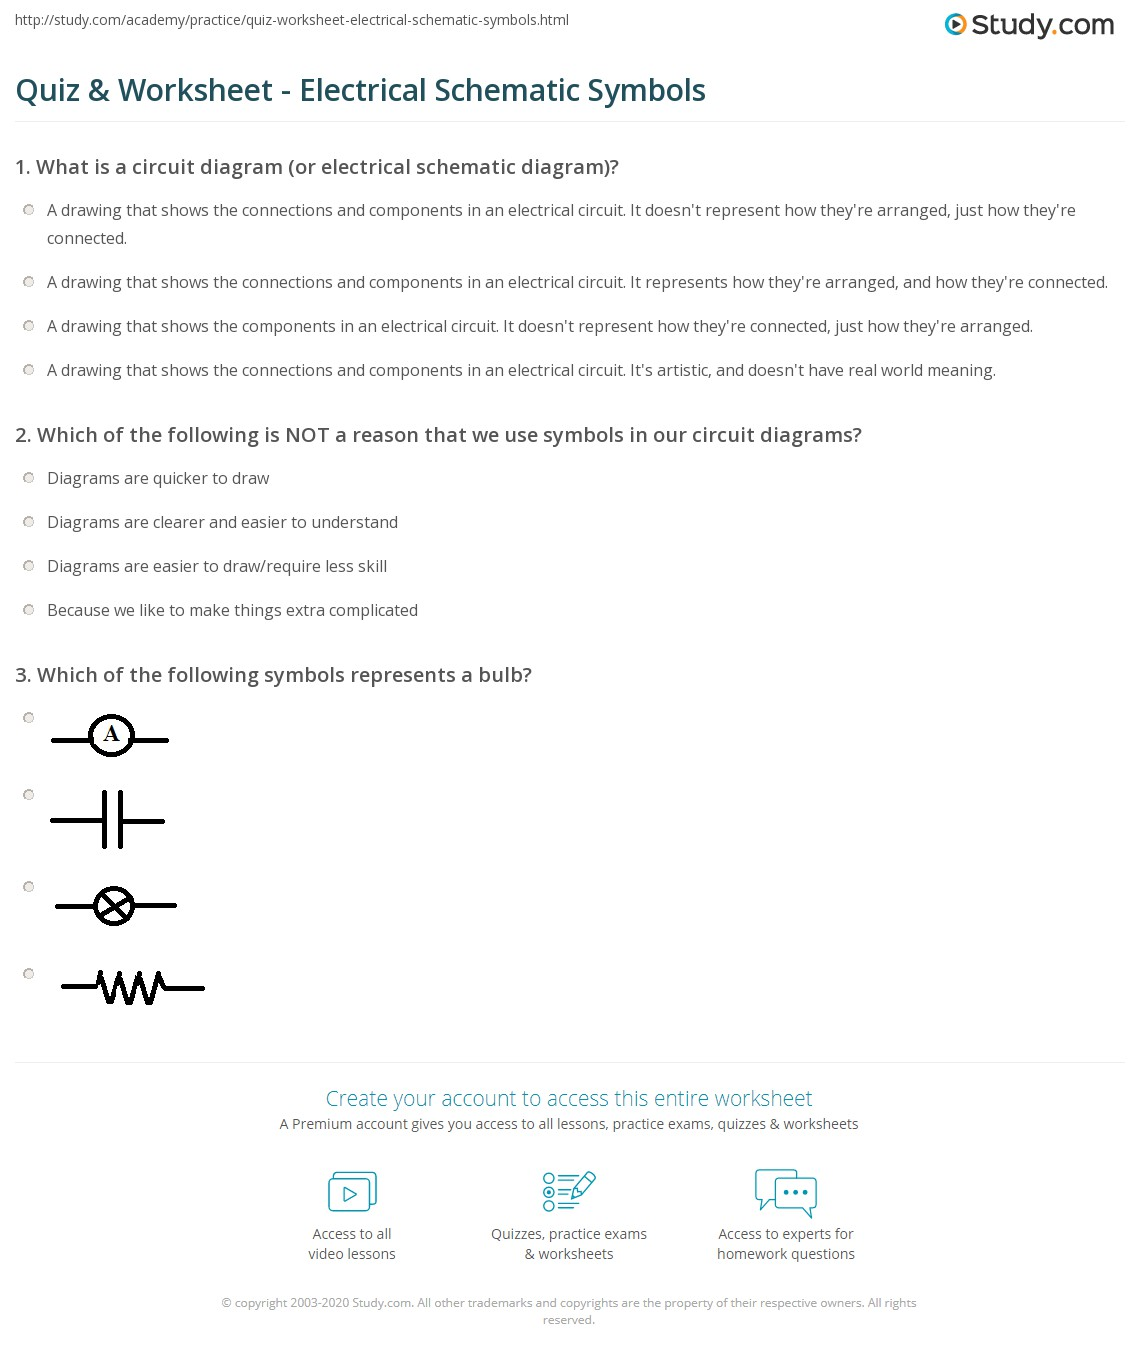 Print Electrical Schematic Symbols Worksheet